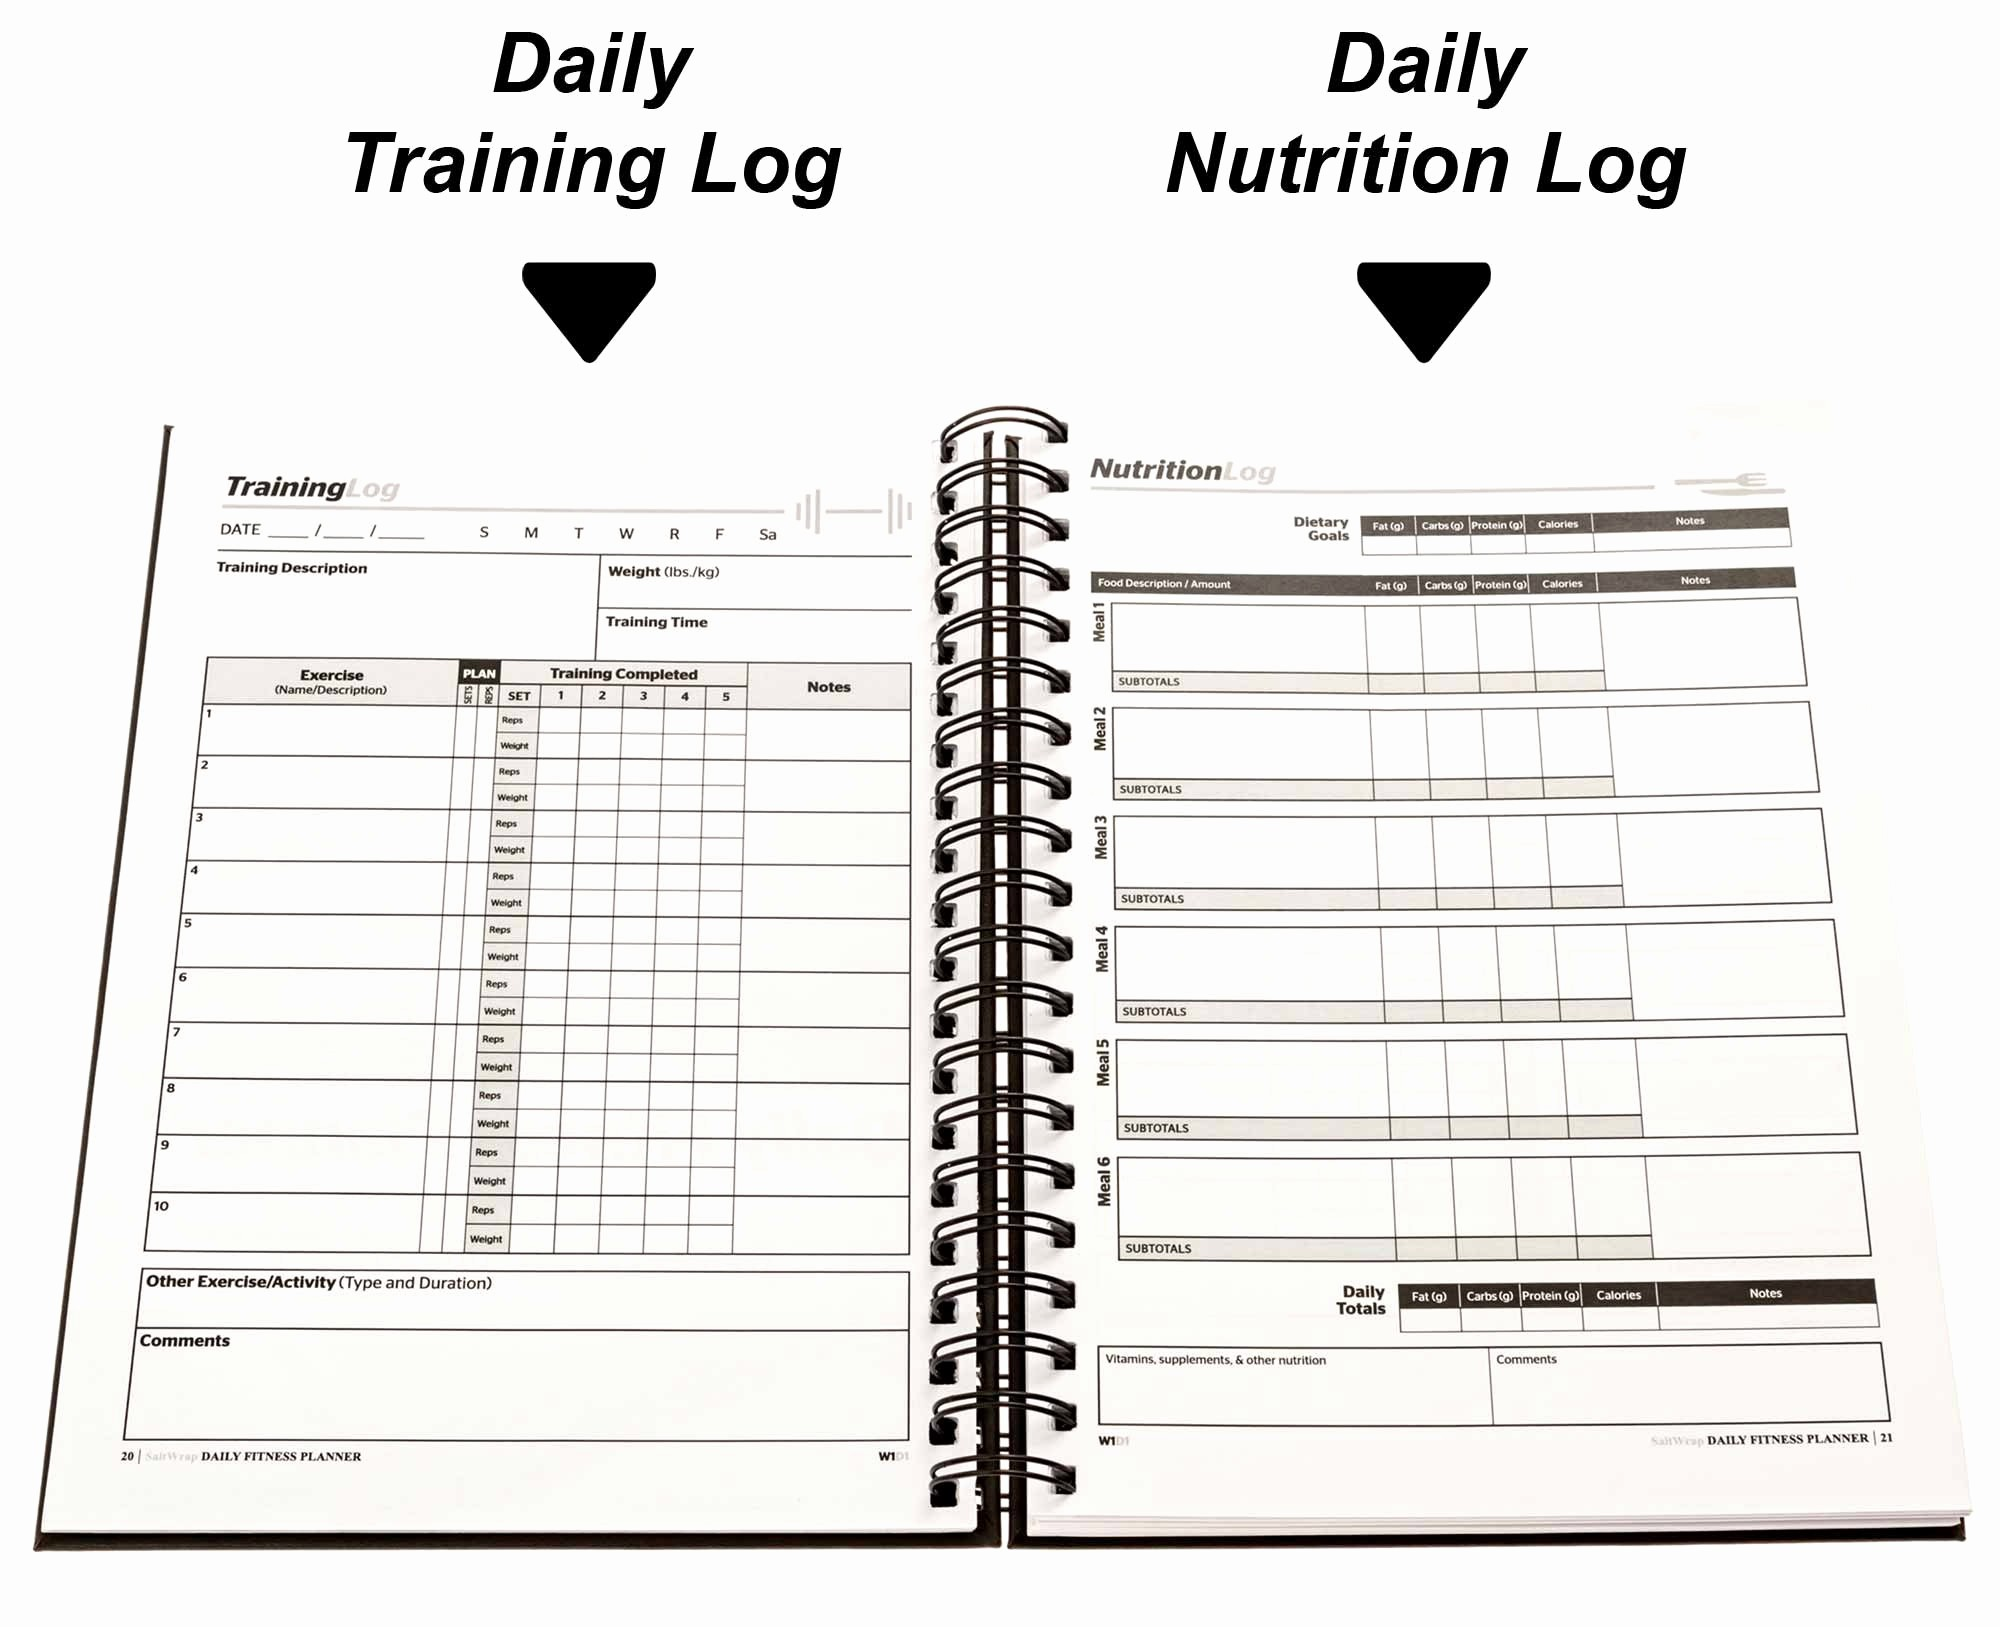 Daily Food and Exercise Log Best Of Saltwrap Daily Fitness Planner Training Log & Food